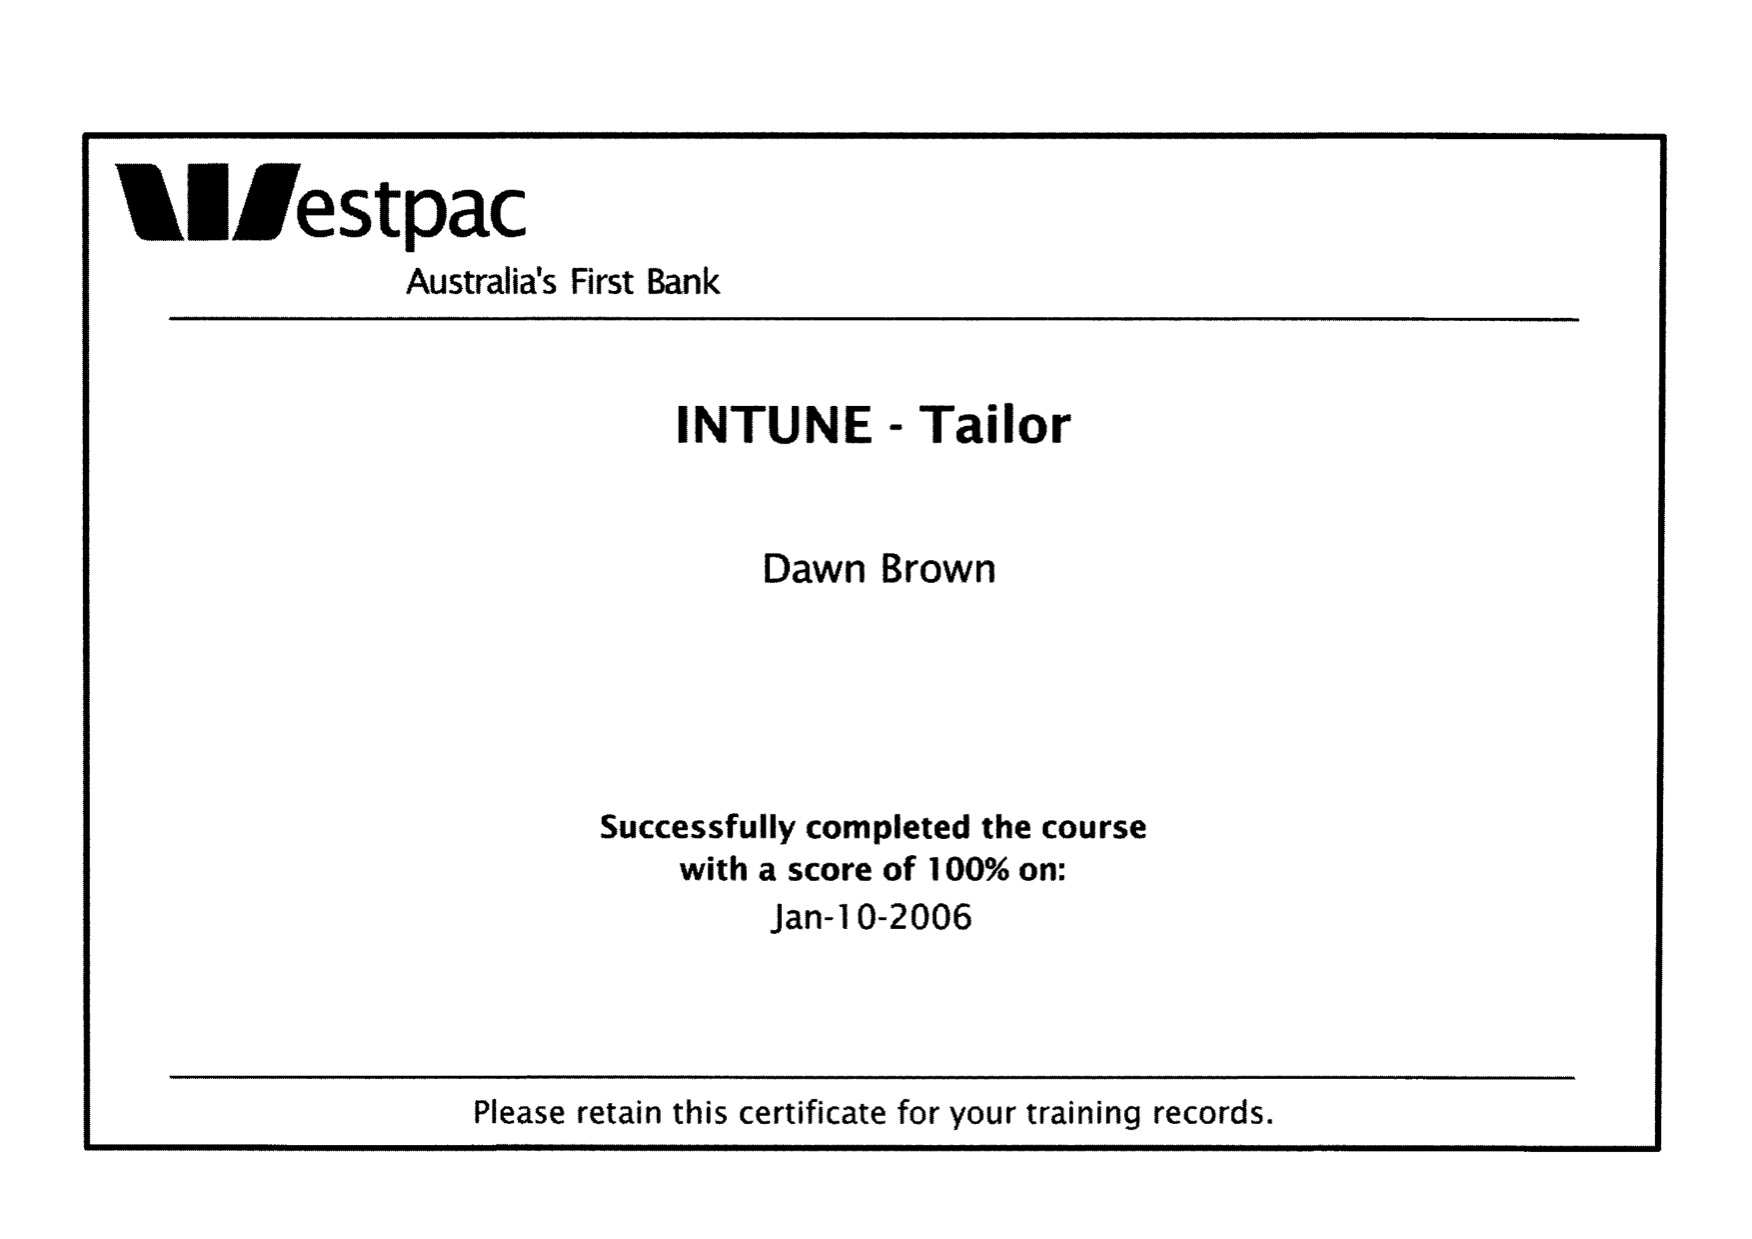 Westpac in tune tailor course certificate